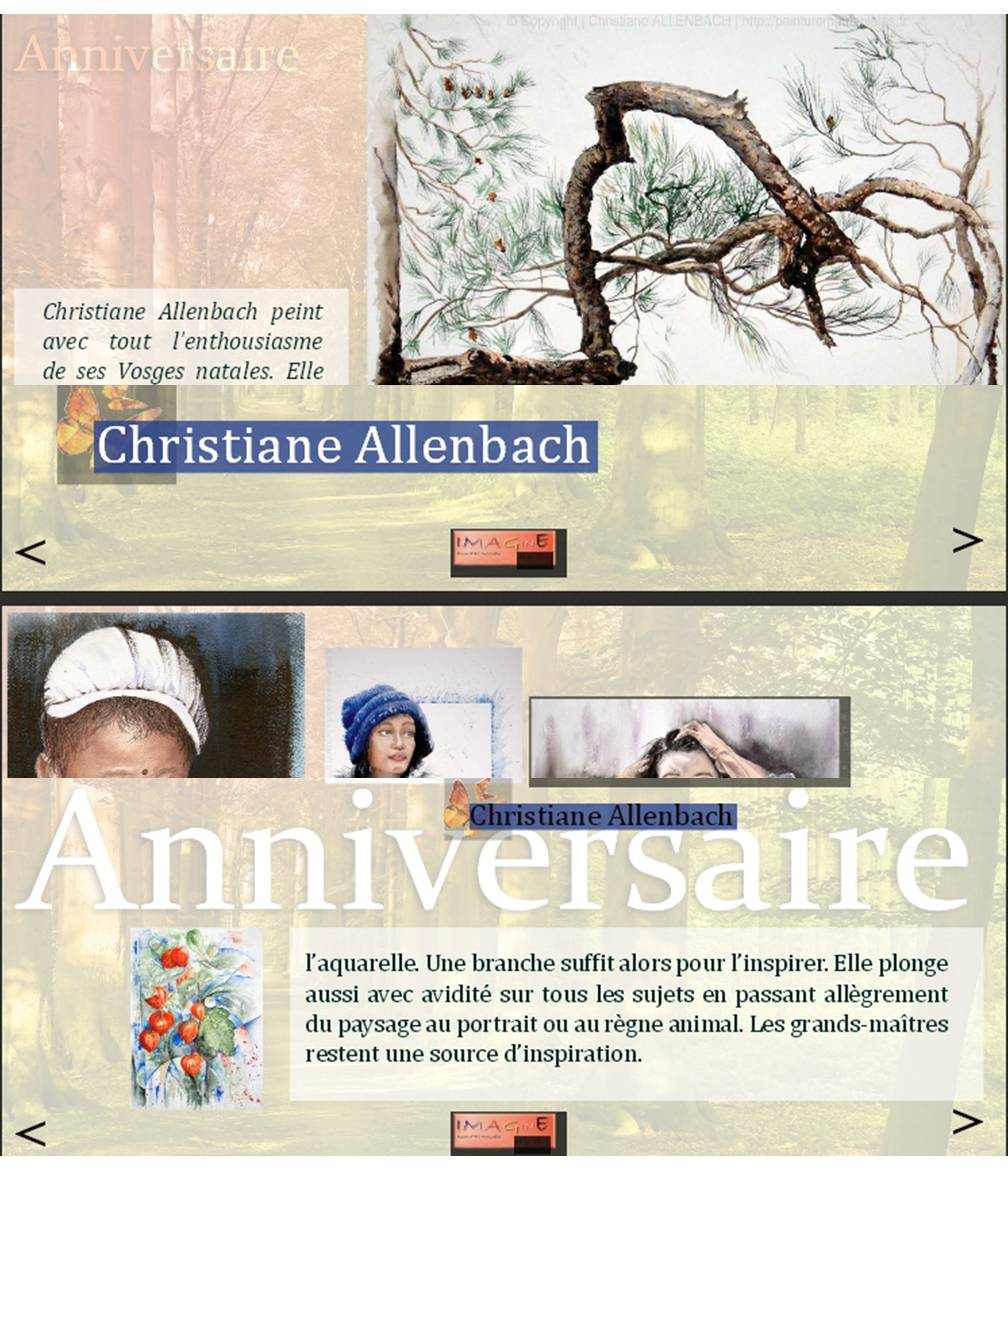 EXTRAIT PUBLICATION IMAGINE 2014 CHRISTIANE ALLENBACH